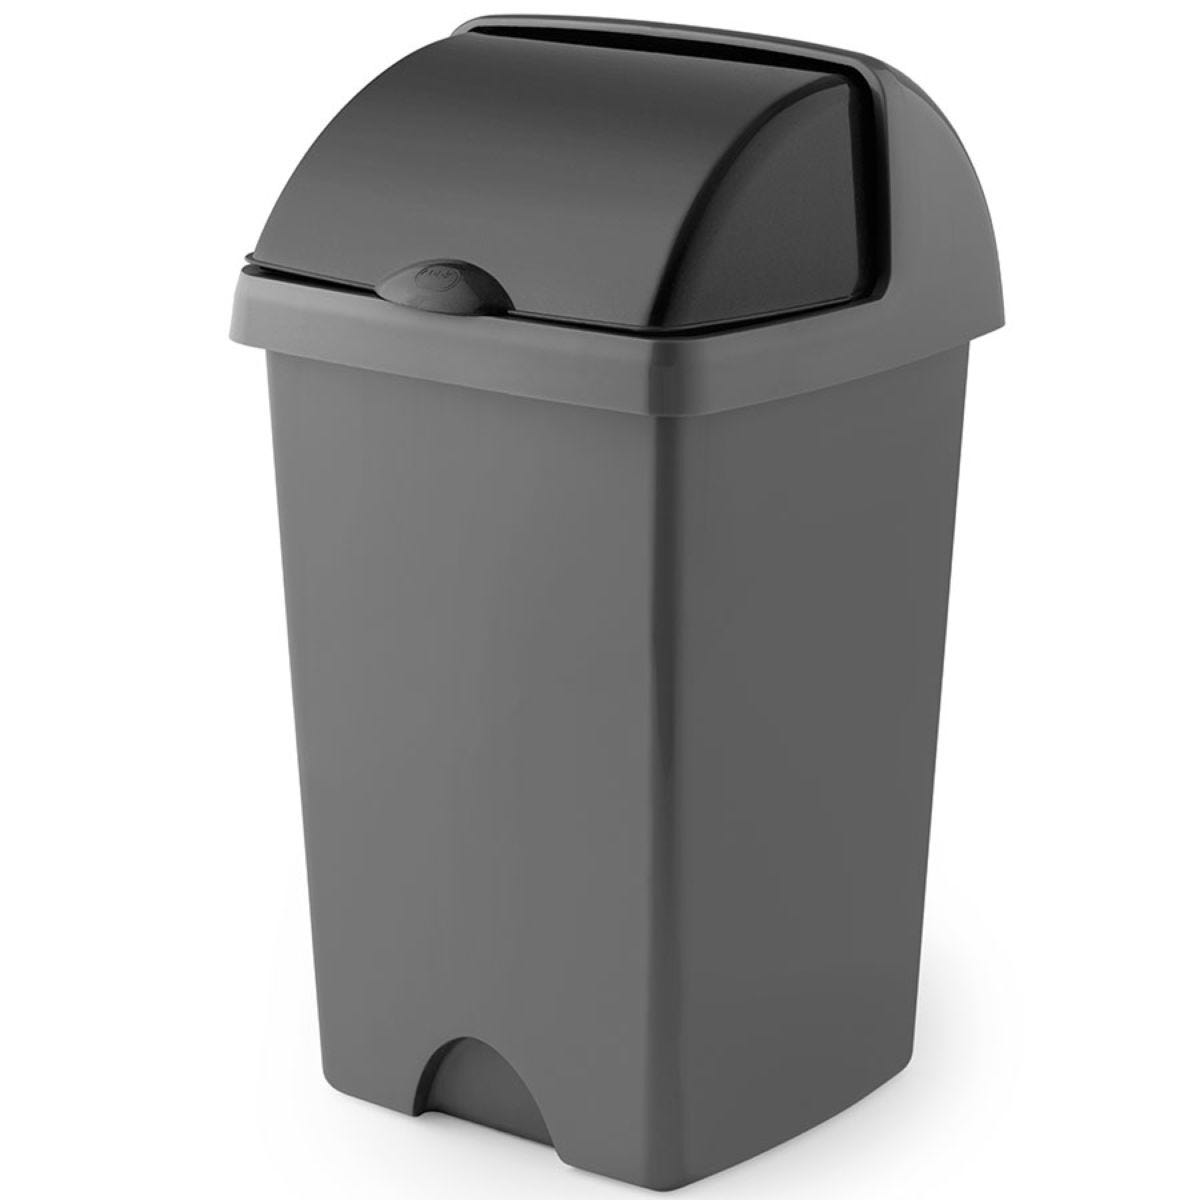 Addis 25L Roll Top Bin - Metallic